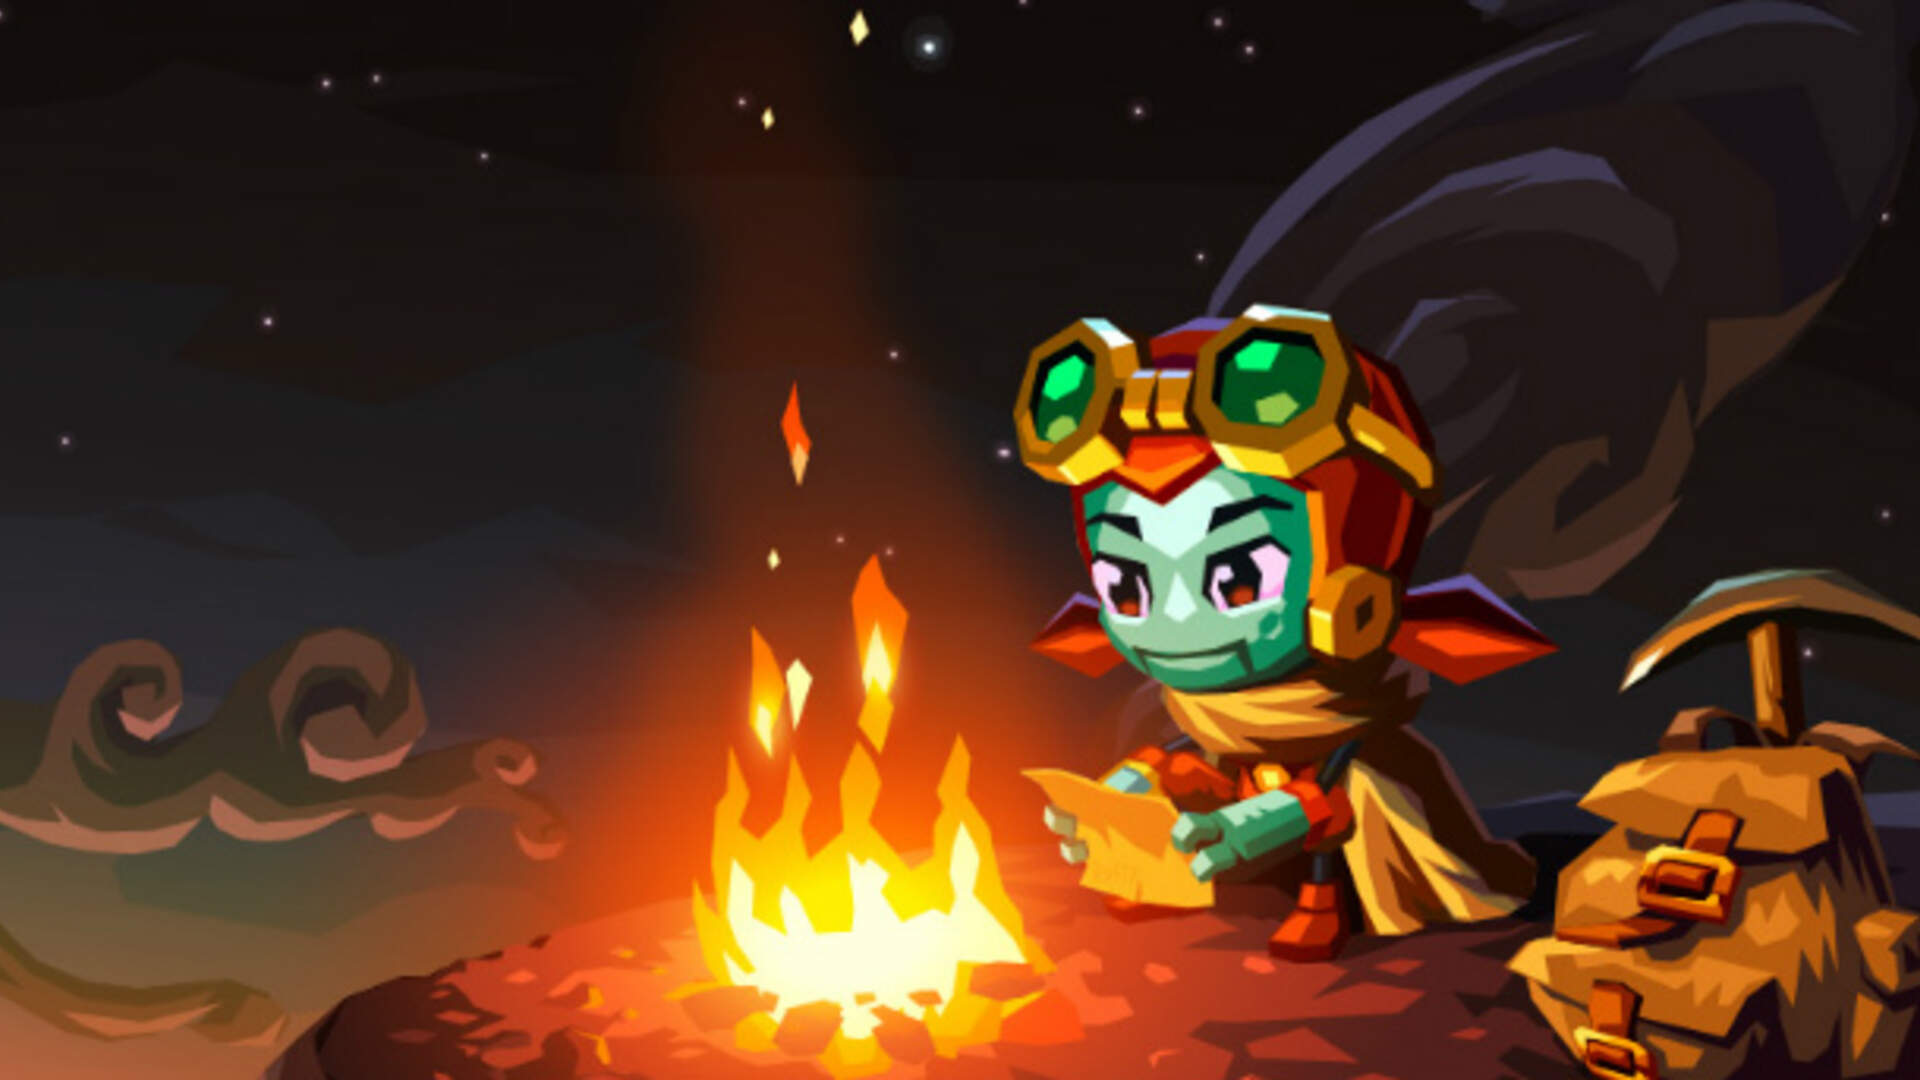 Steamworld Dig 2 For Switch Joined By PS4 and PC Releases